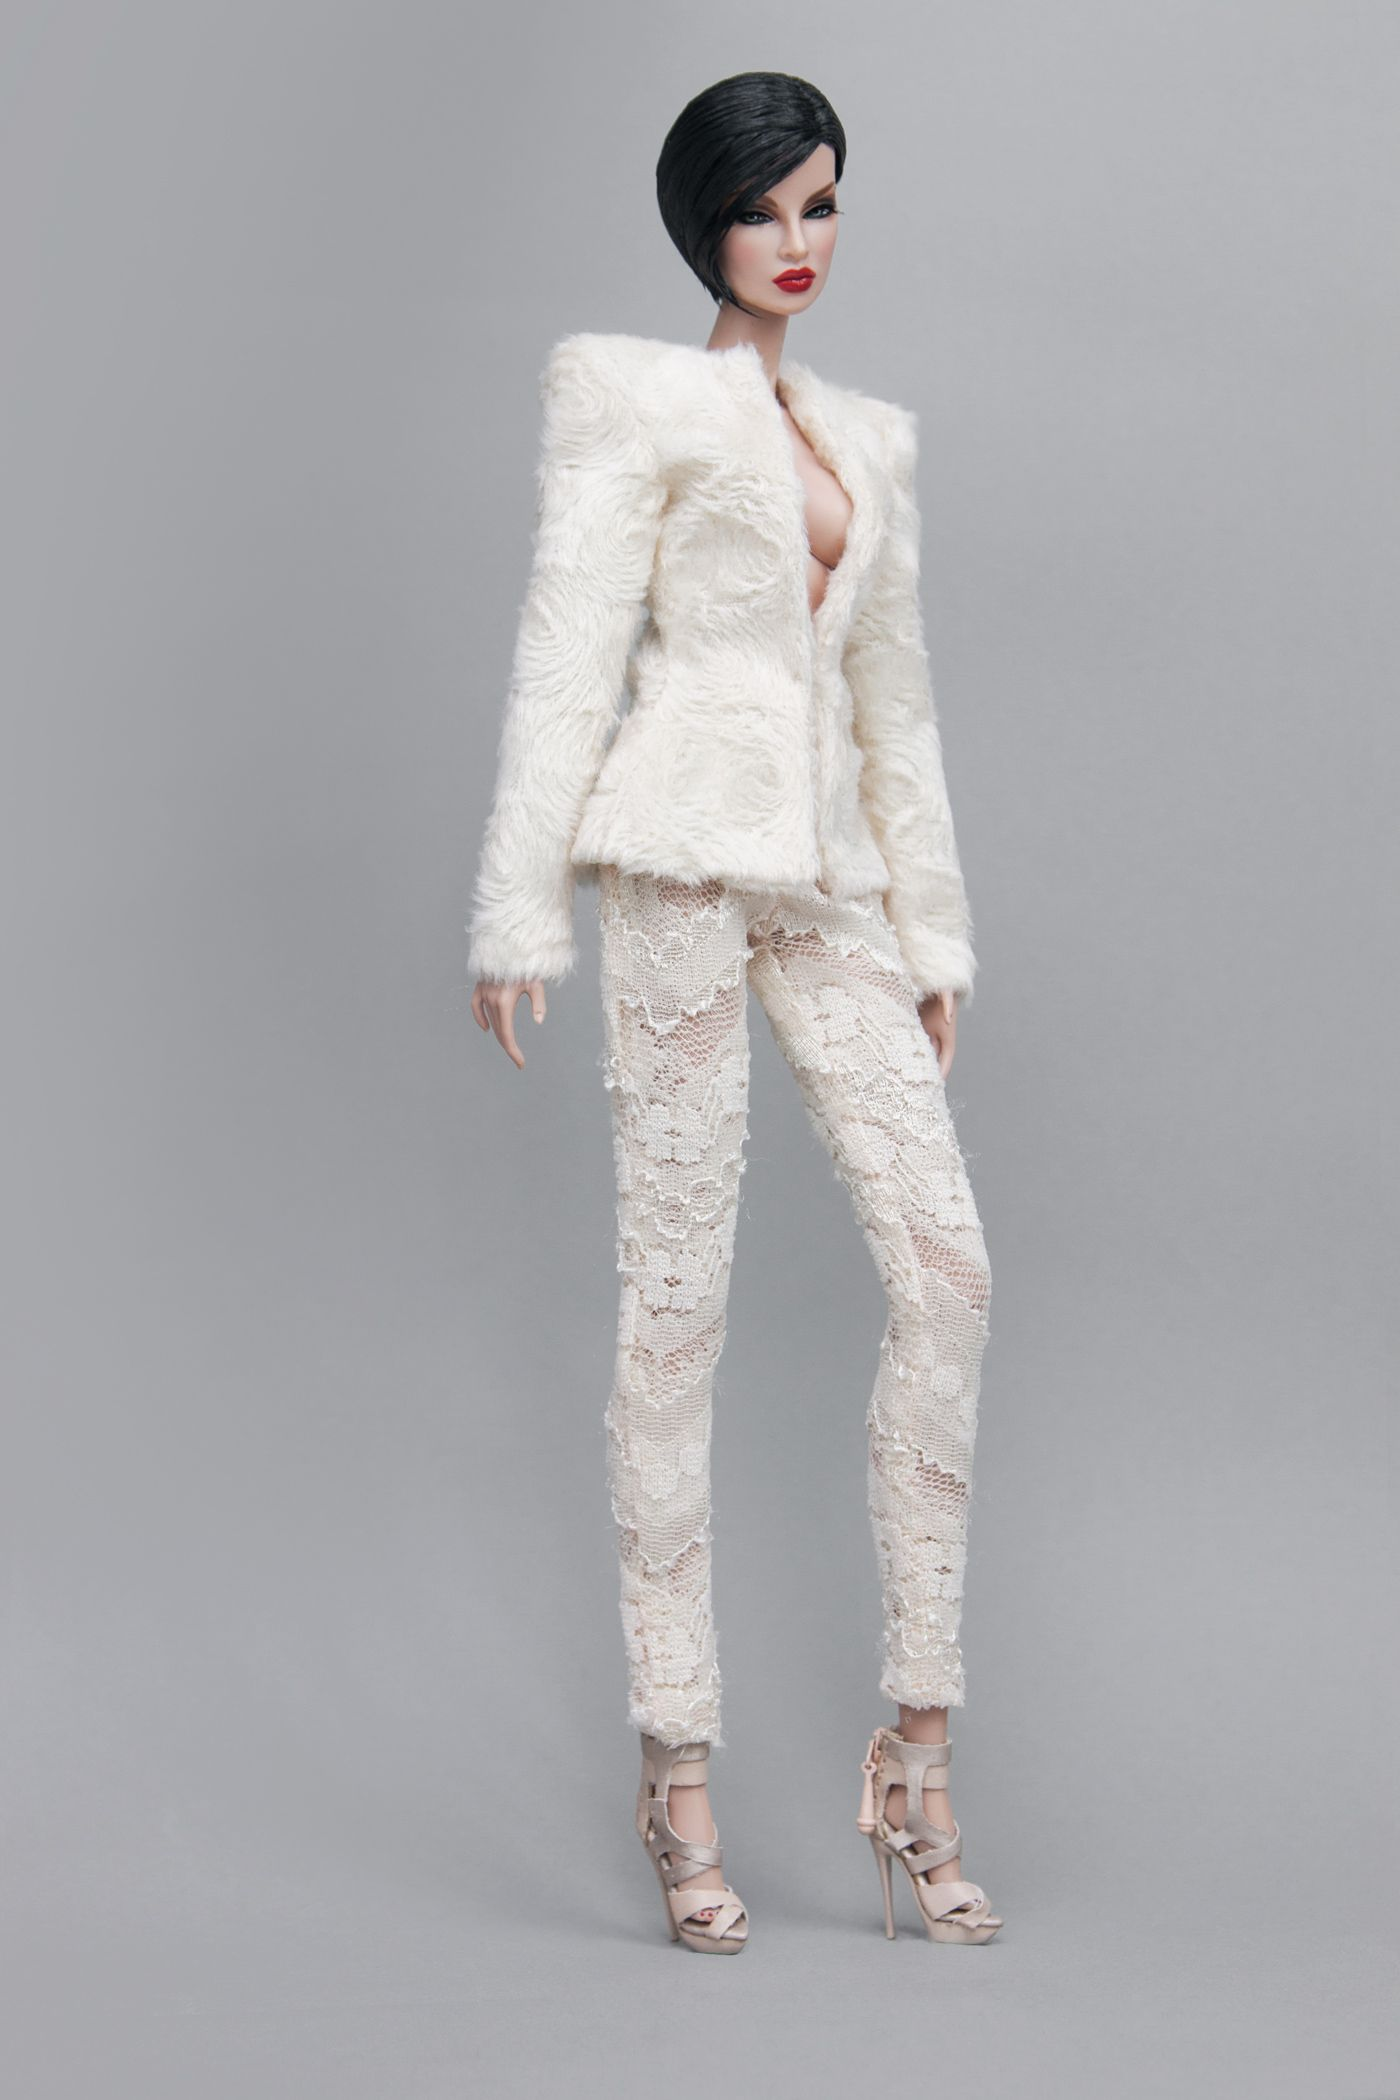 Broad Shoulder Structured Jacket In Cream Faux Fur Skinny Pants In Cream Lace Both Fully Lined